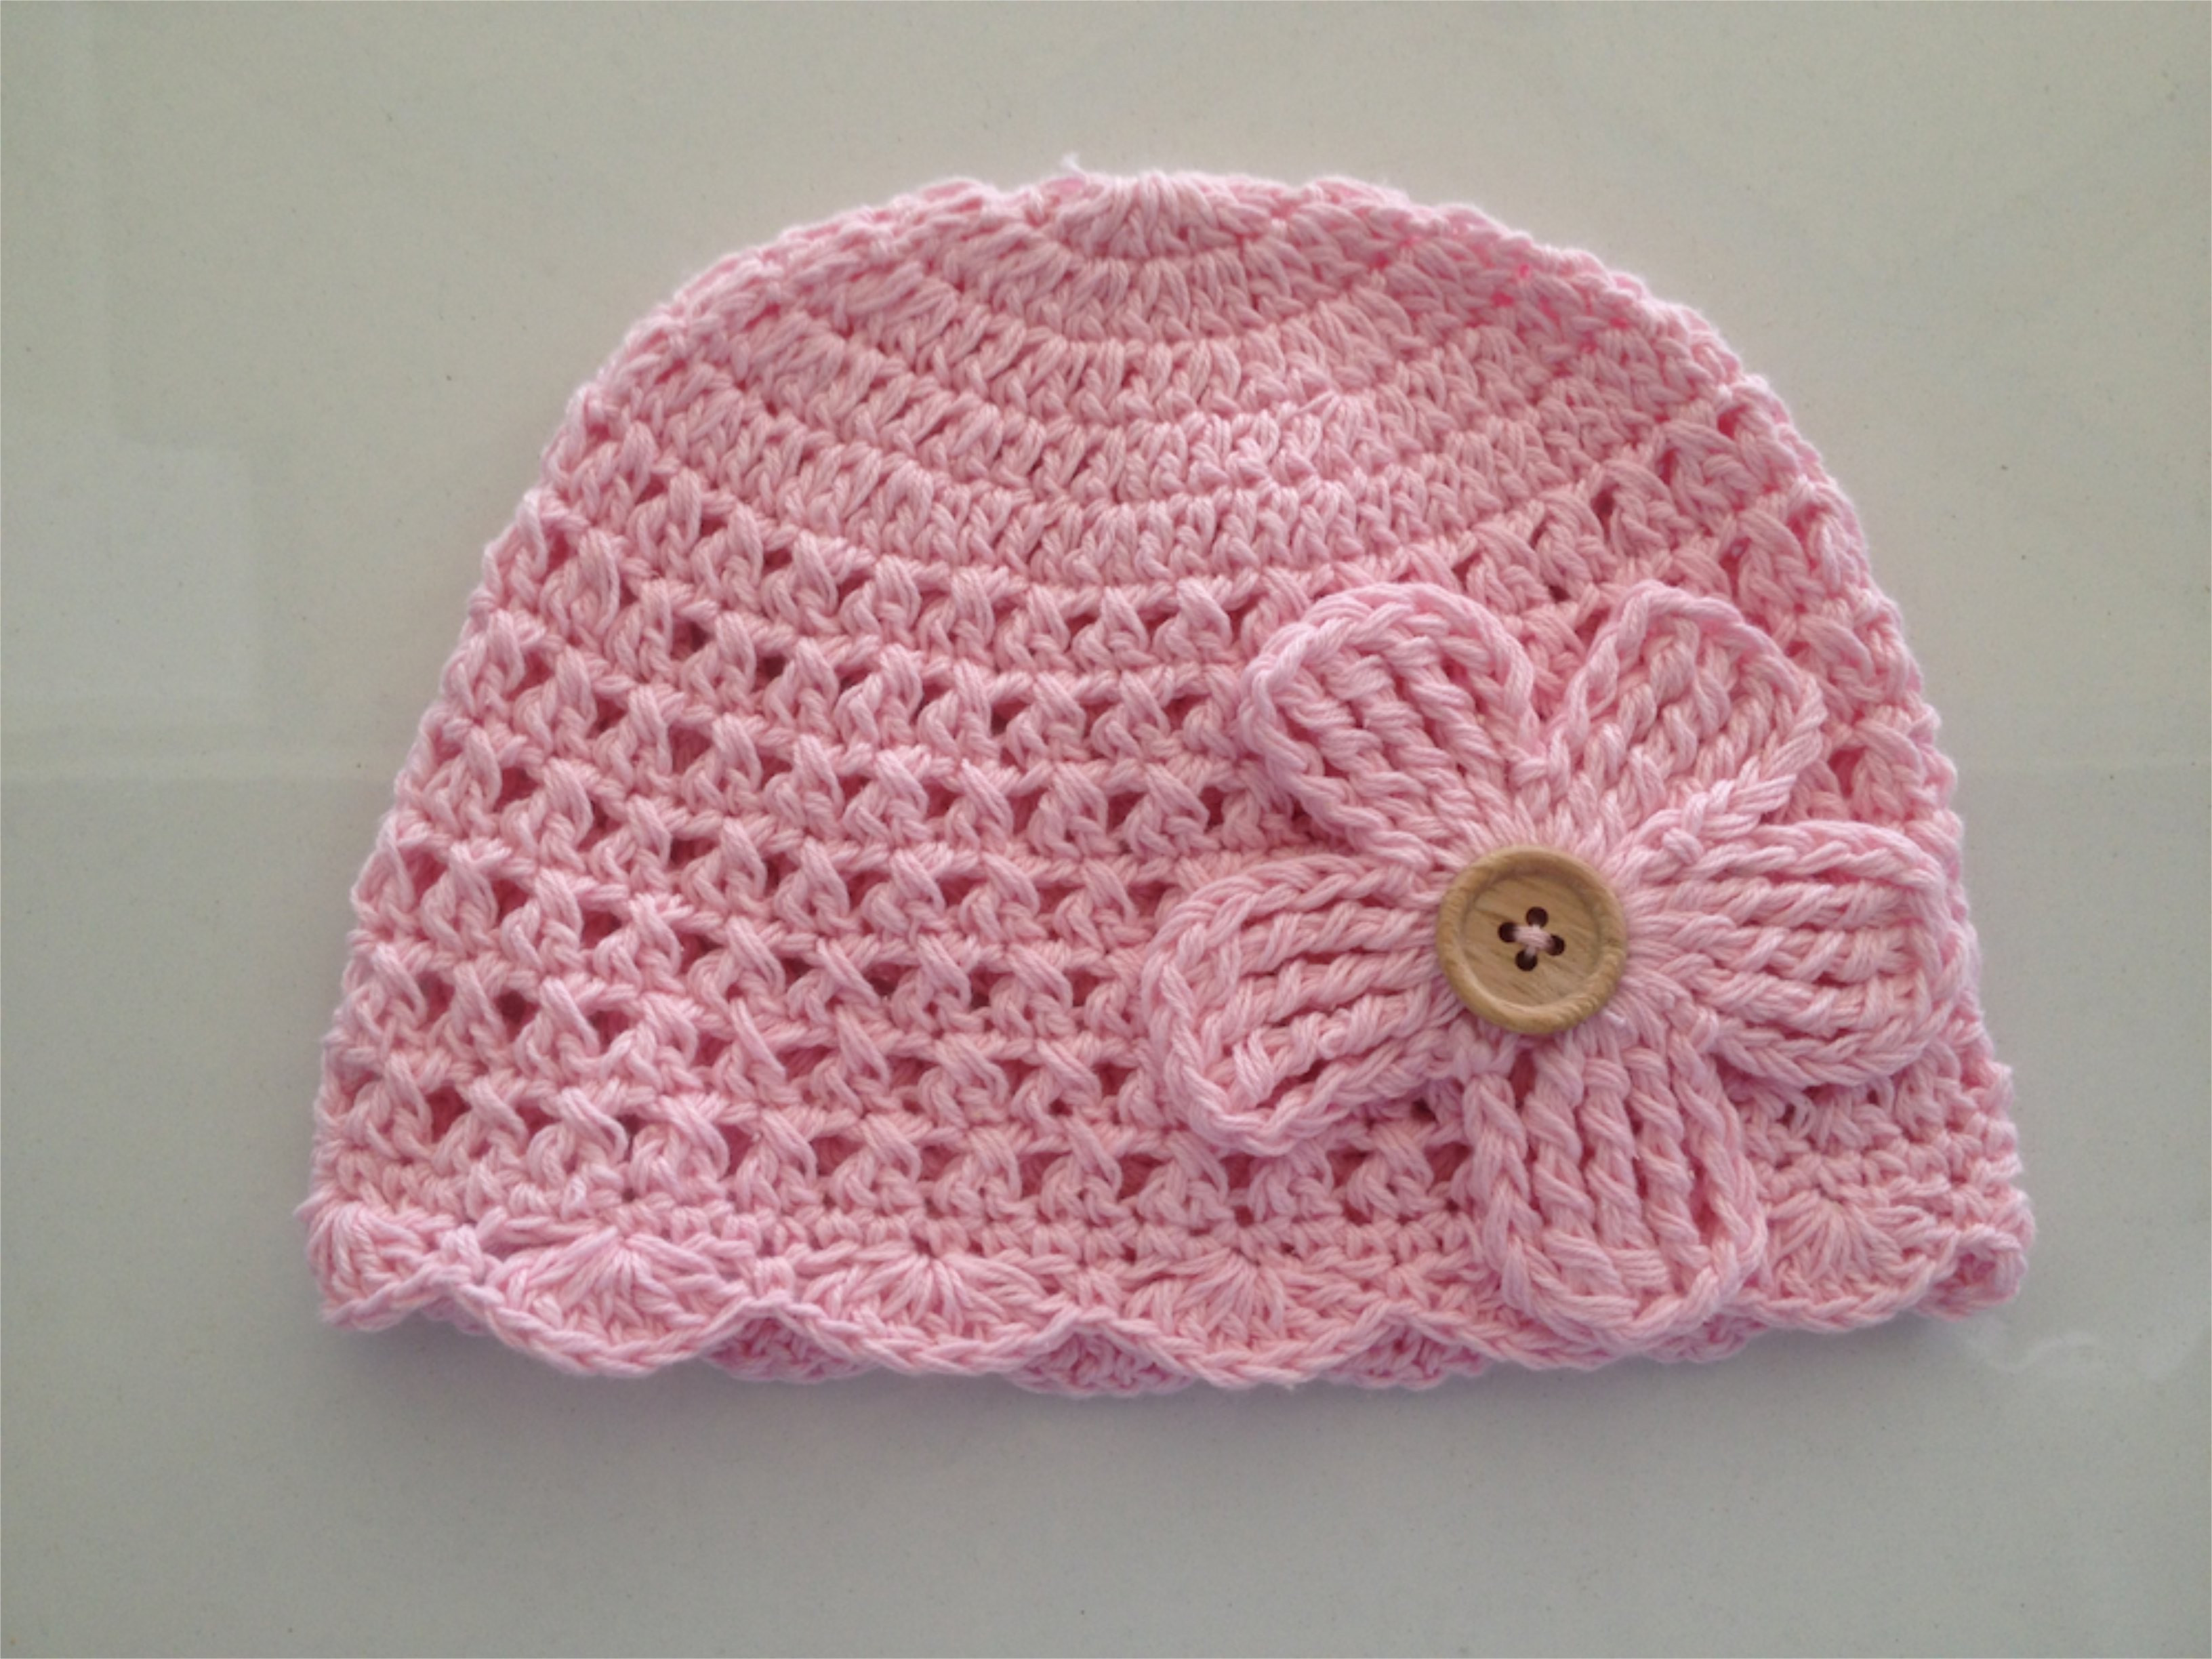 New wholesale Baby Crochet Daisy button Beanie Crochet toddler Beanie Of Delightful 40 Ideas Crochet toddler Beanie